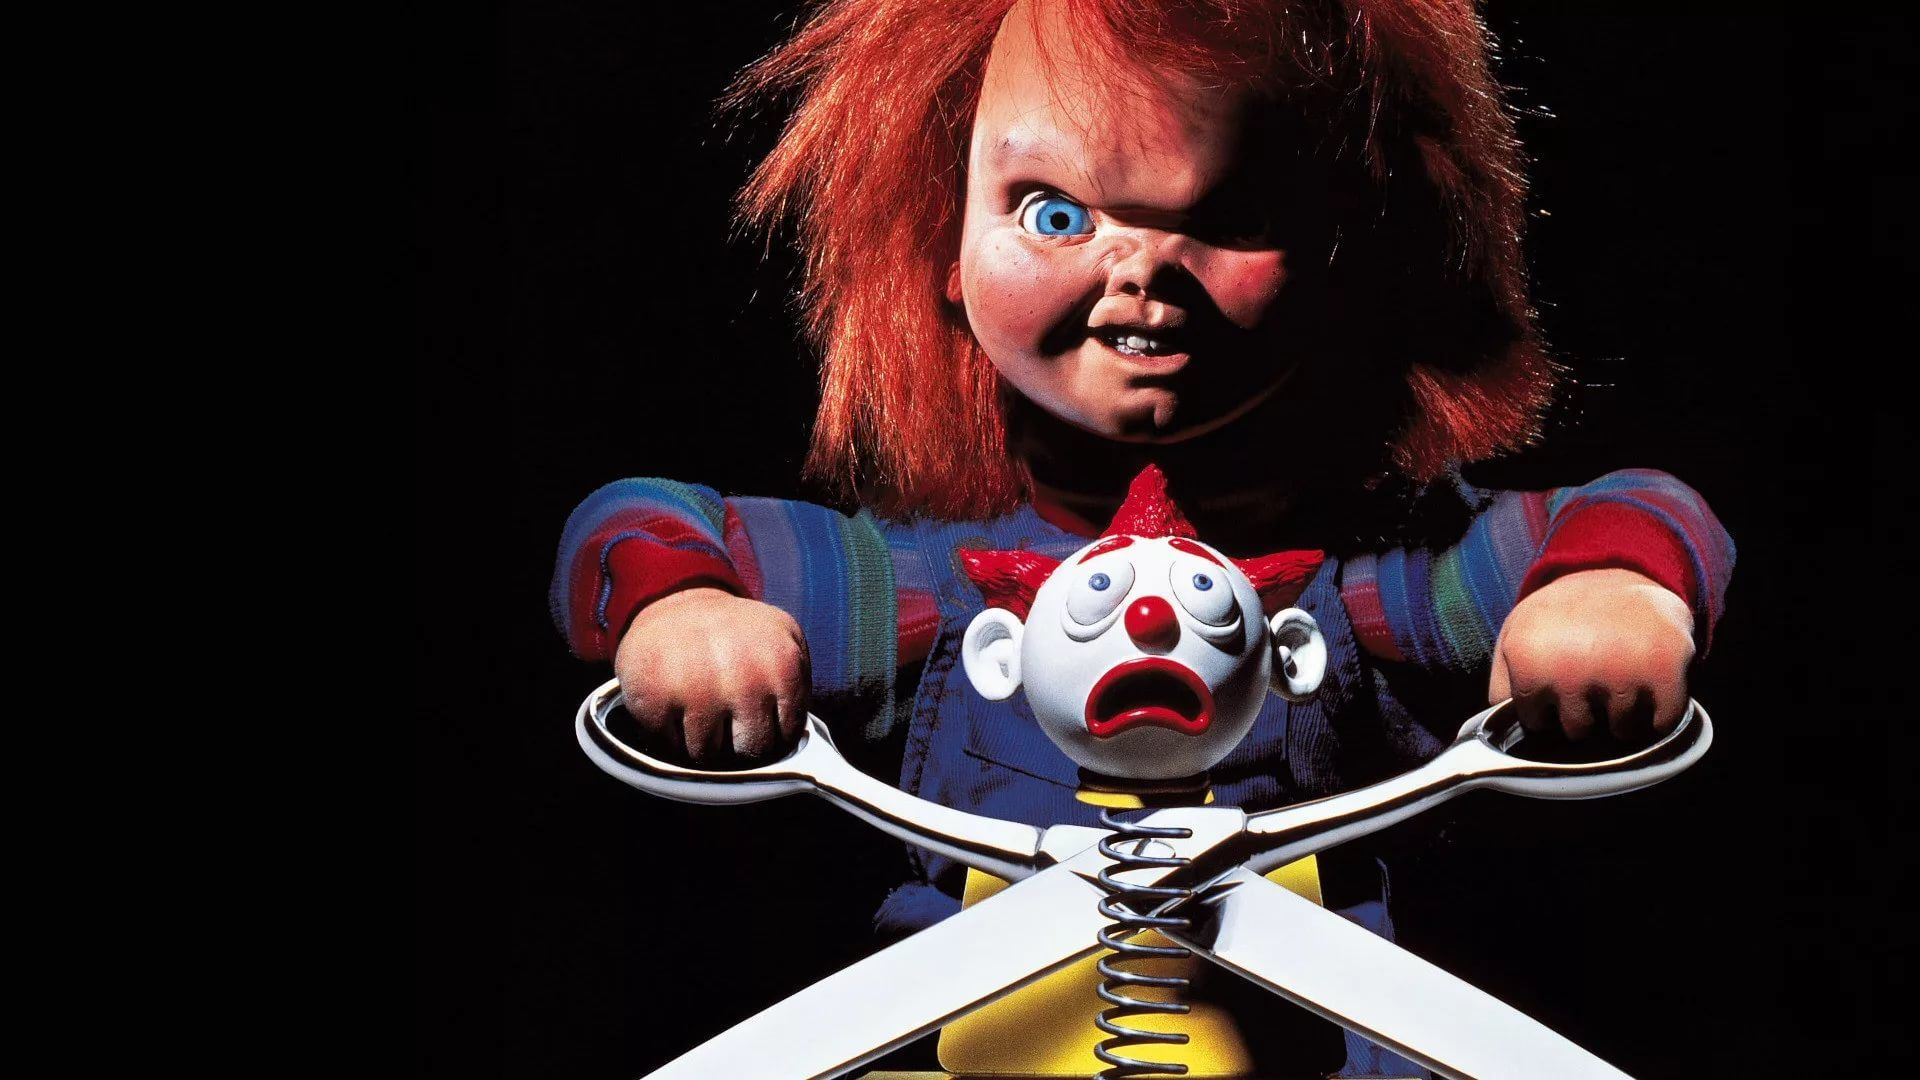 Chucky Doll Download Wallpaper